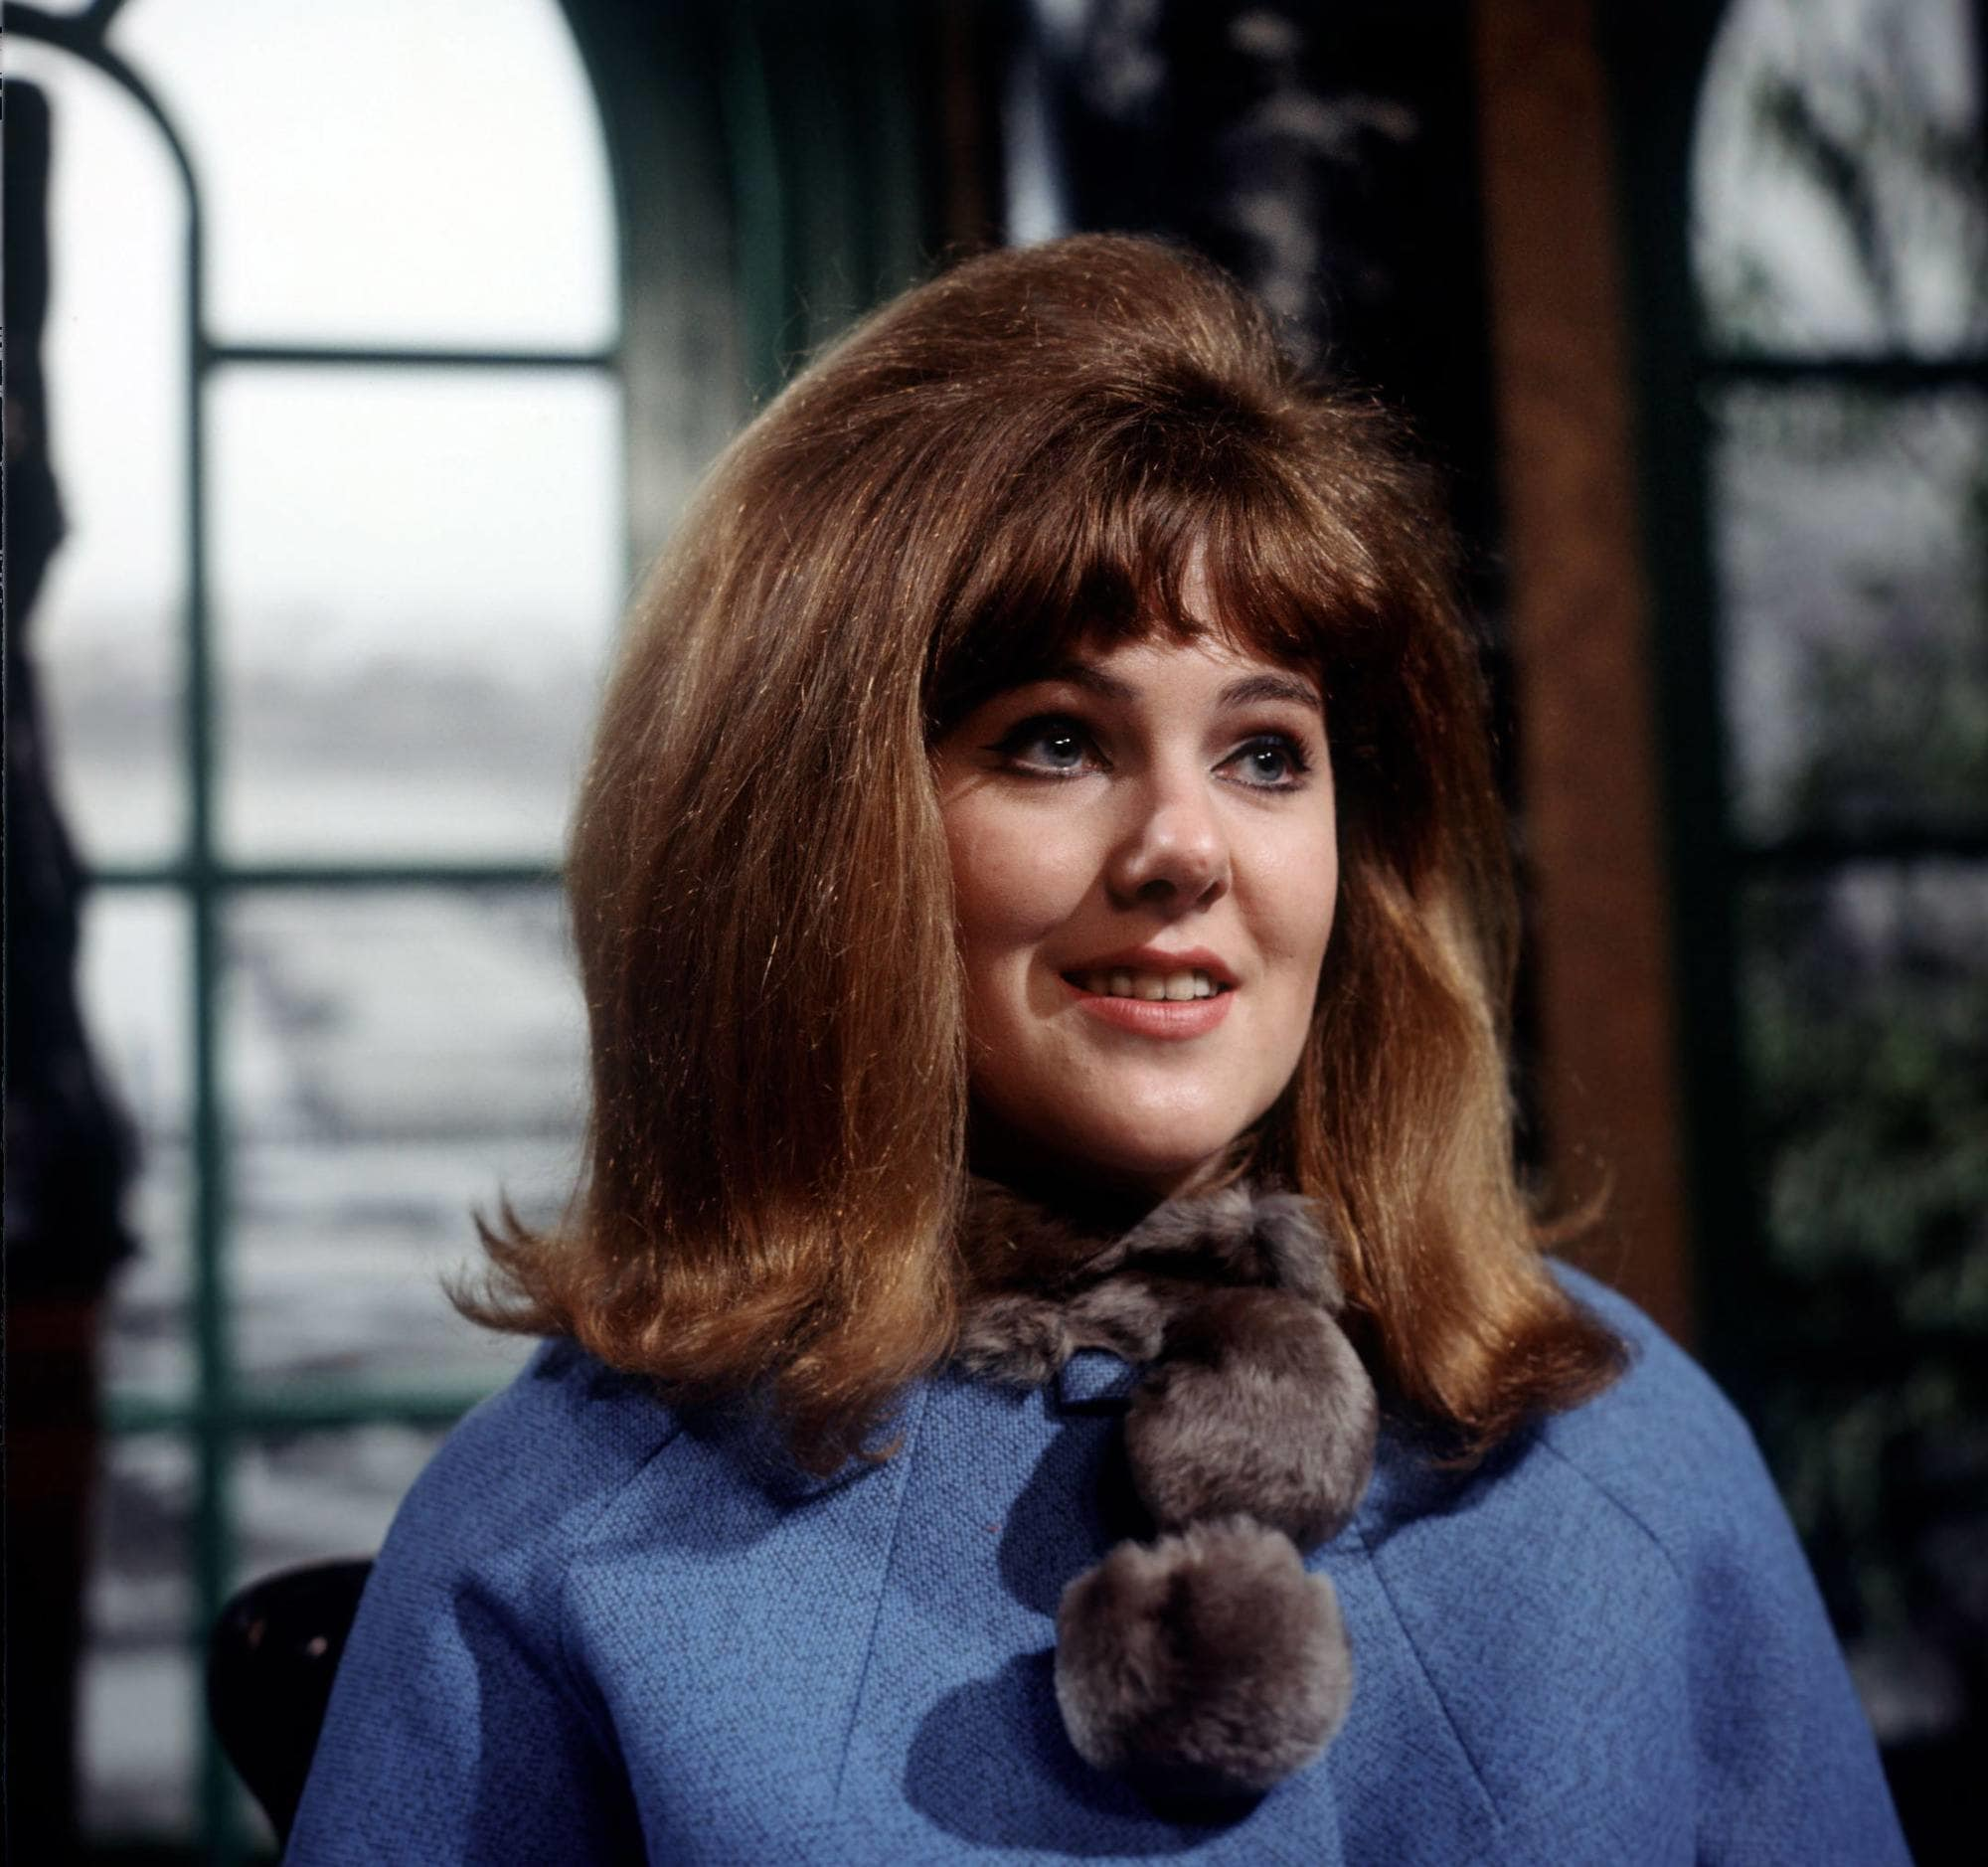 60s hairstyles: Lynne Redgrave with medium brown hair in mid length style with flipped ends